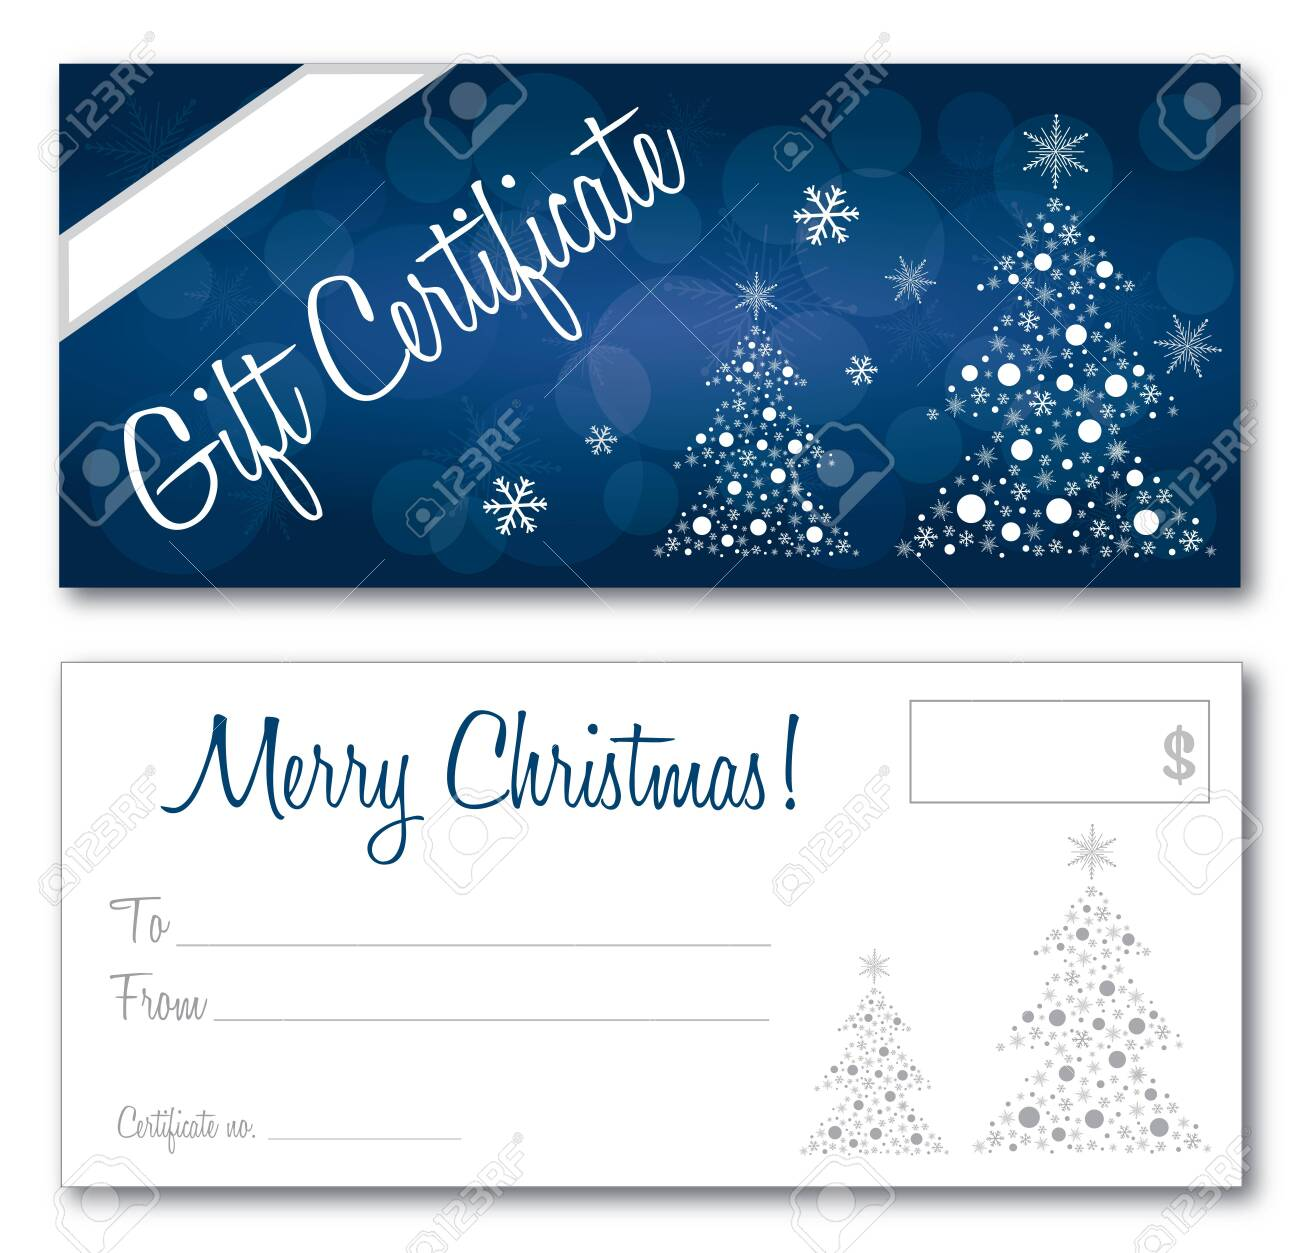 blue gift certificate christmas design vector front and back font outline no drop shadow on the vector - 135447661